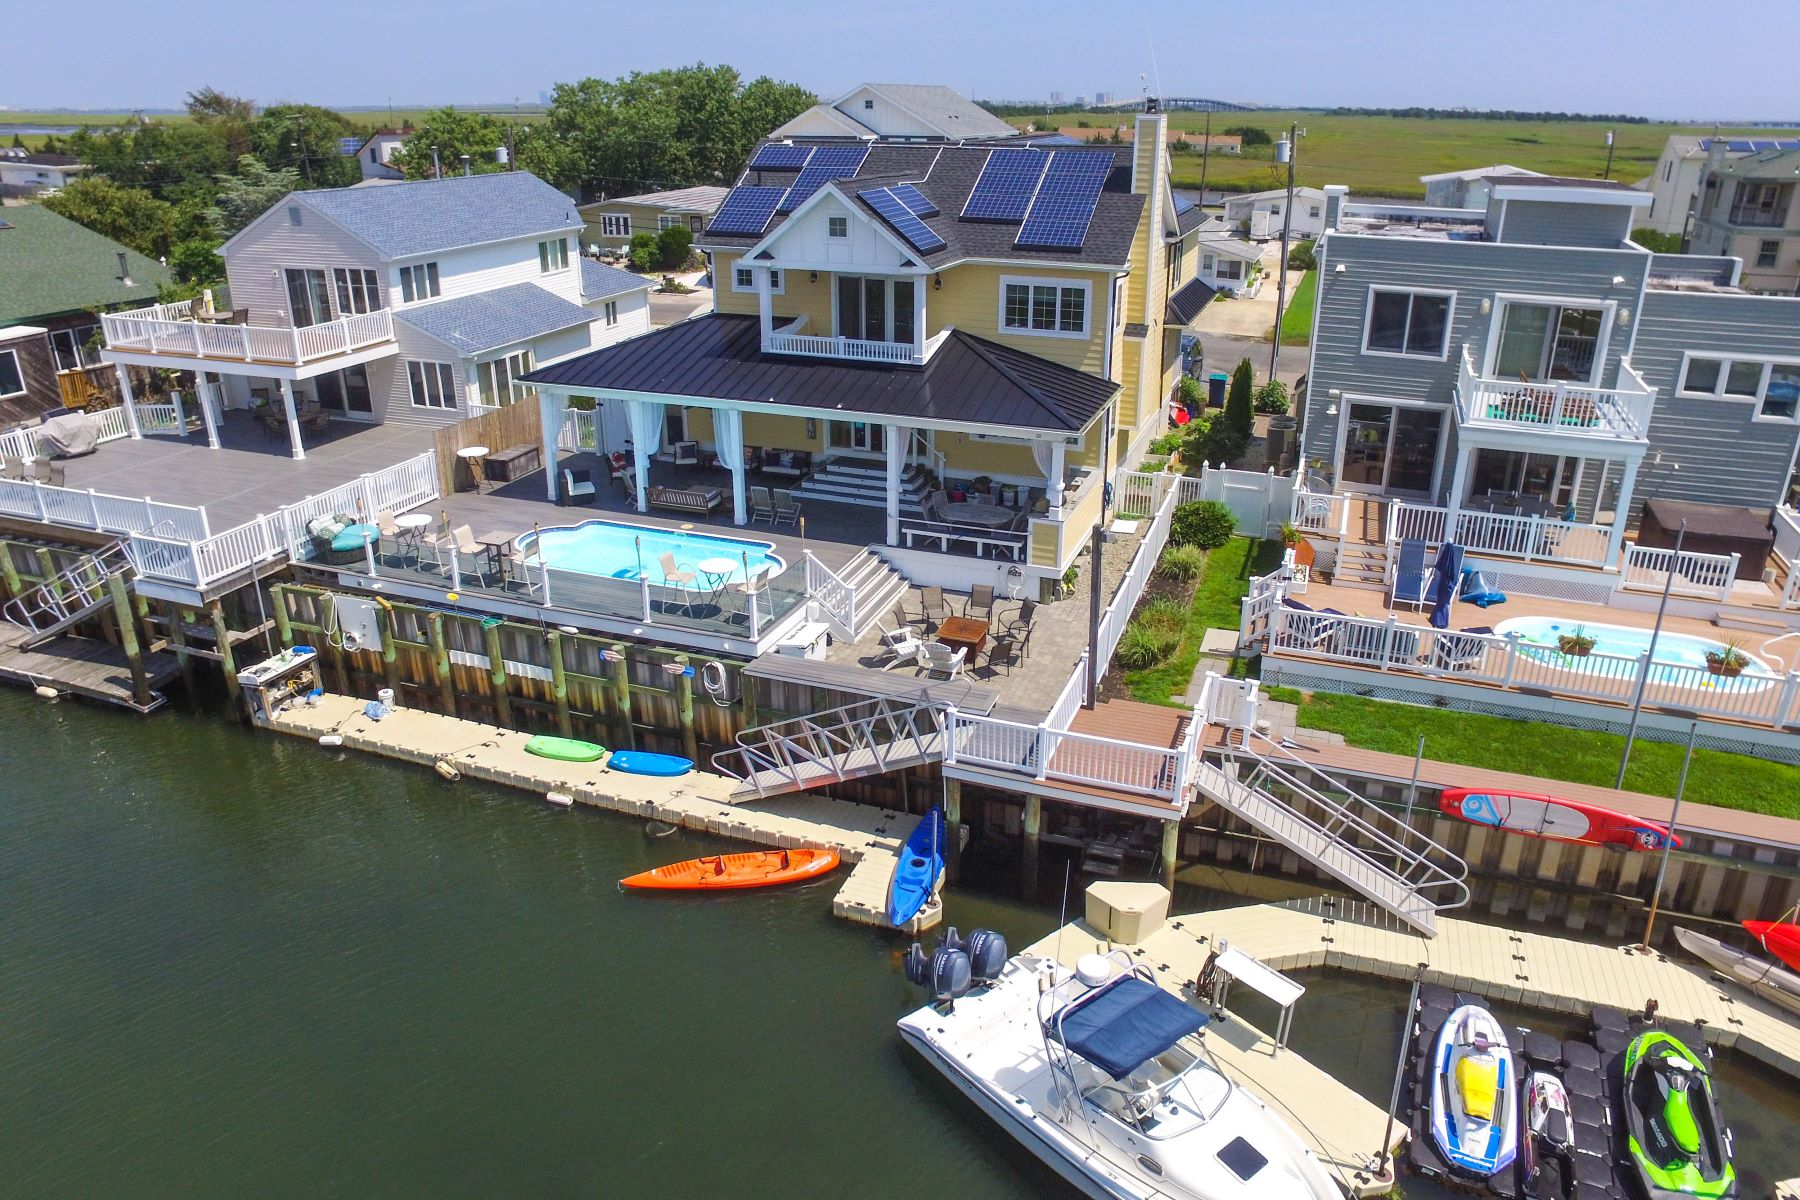 Single Family Home for Sale at Luxurious Lagoon Home 8 Point Drive, Somers Point, New Jersey 08244 United States